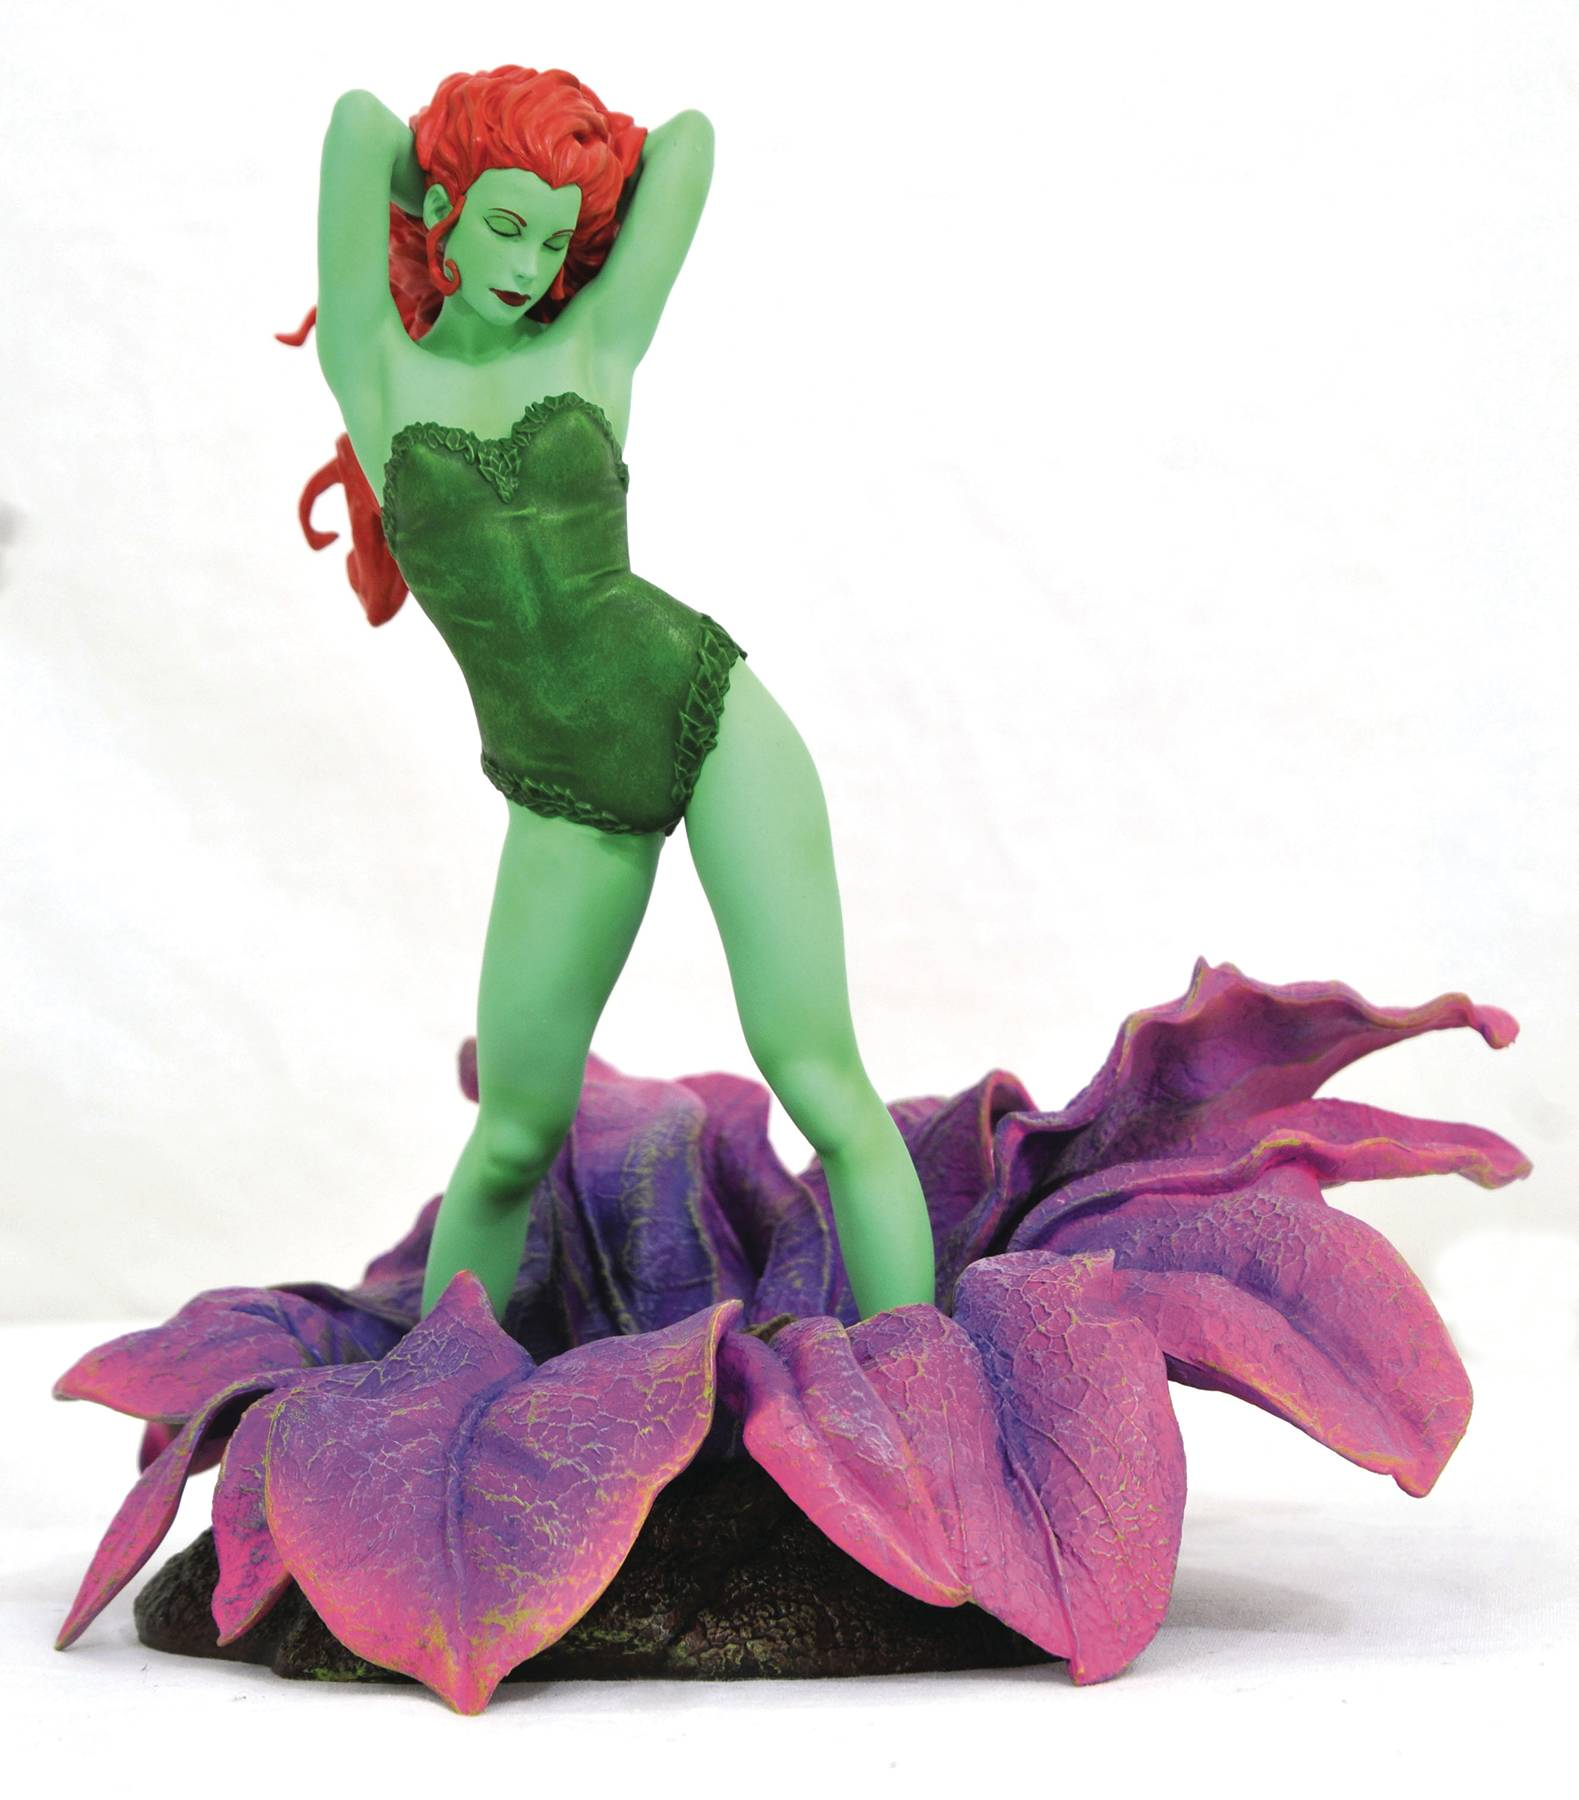 DC GALLERY COMIC POISON IVY PVC STATUE